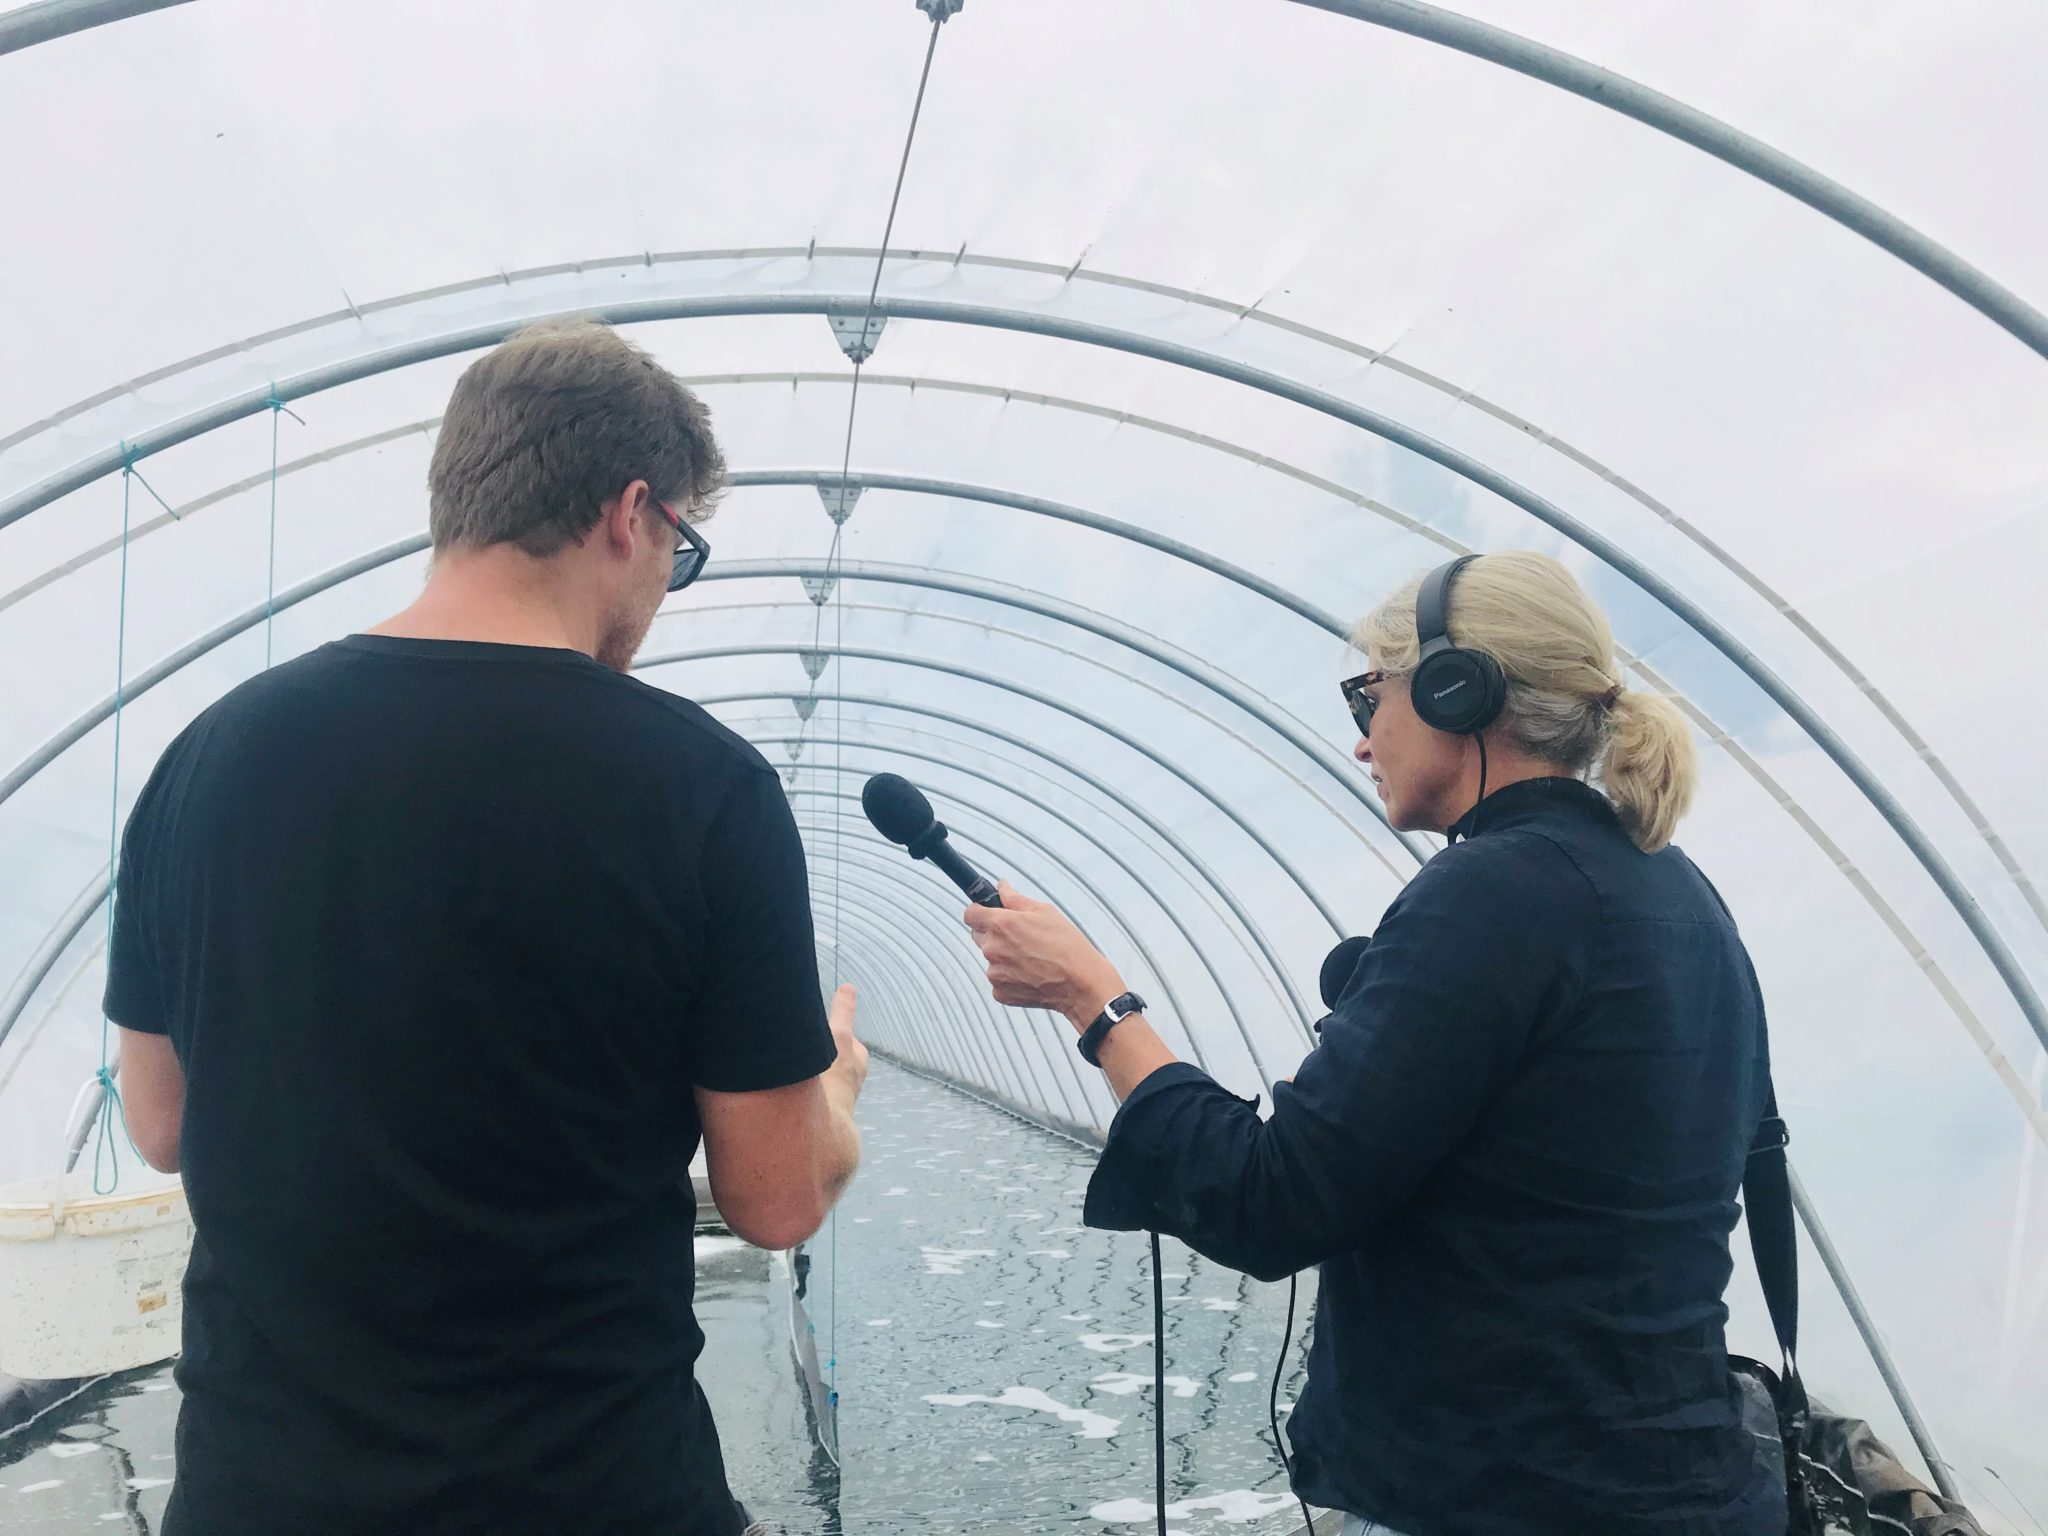 Radio interview at Tahi Spirulina farm